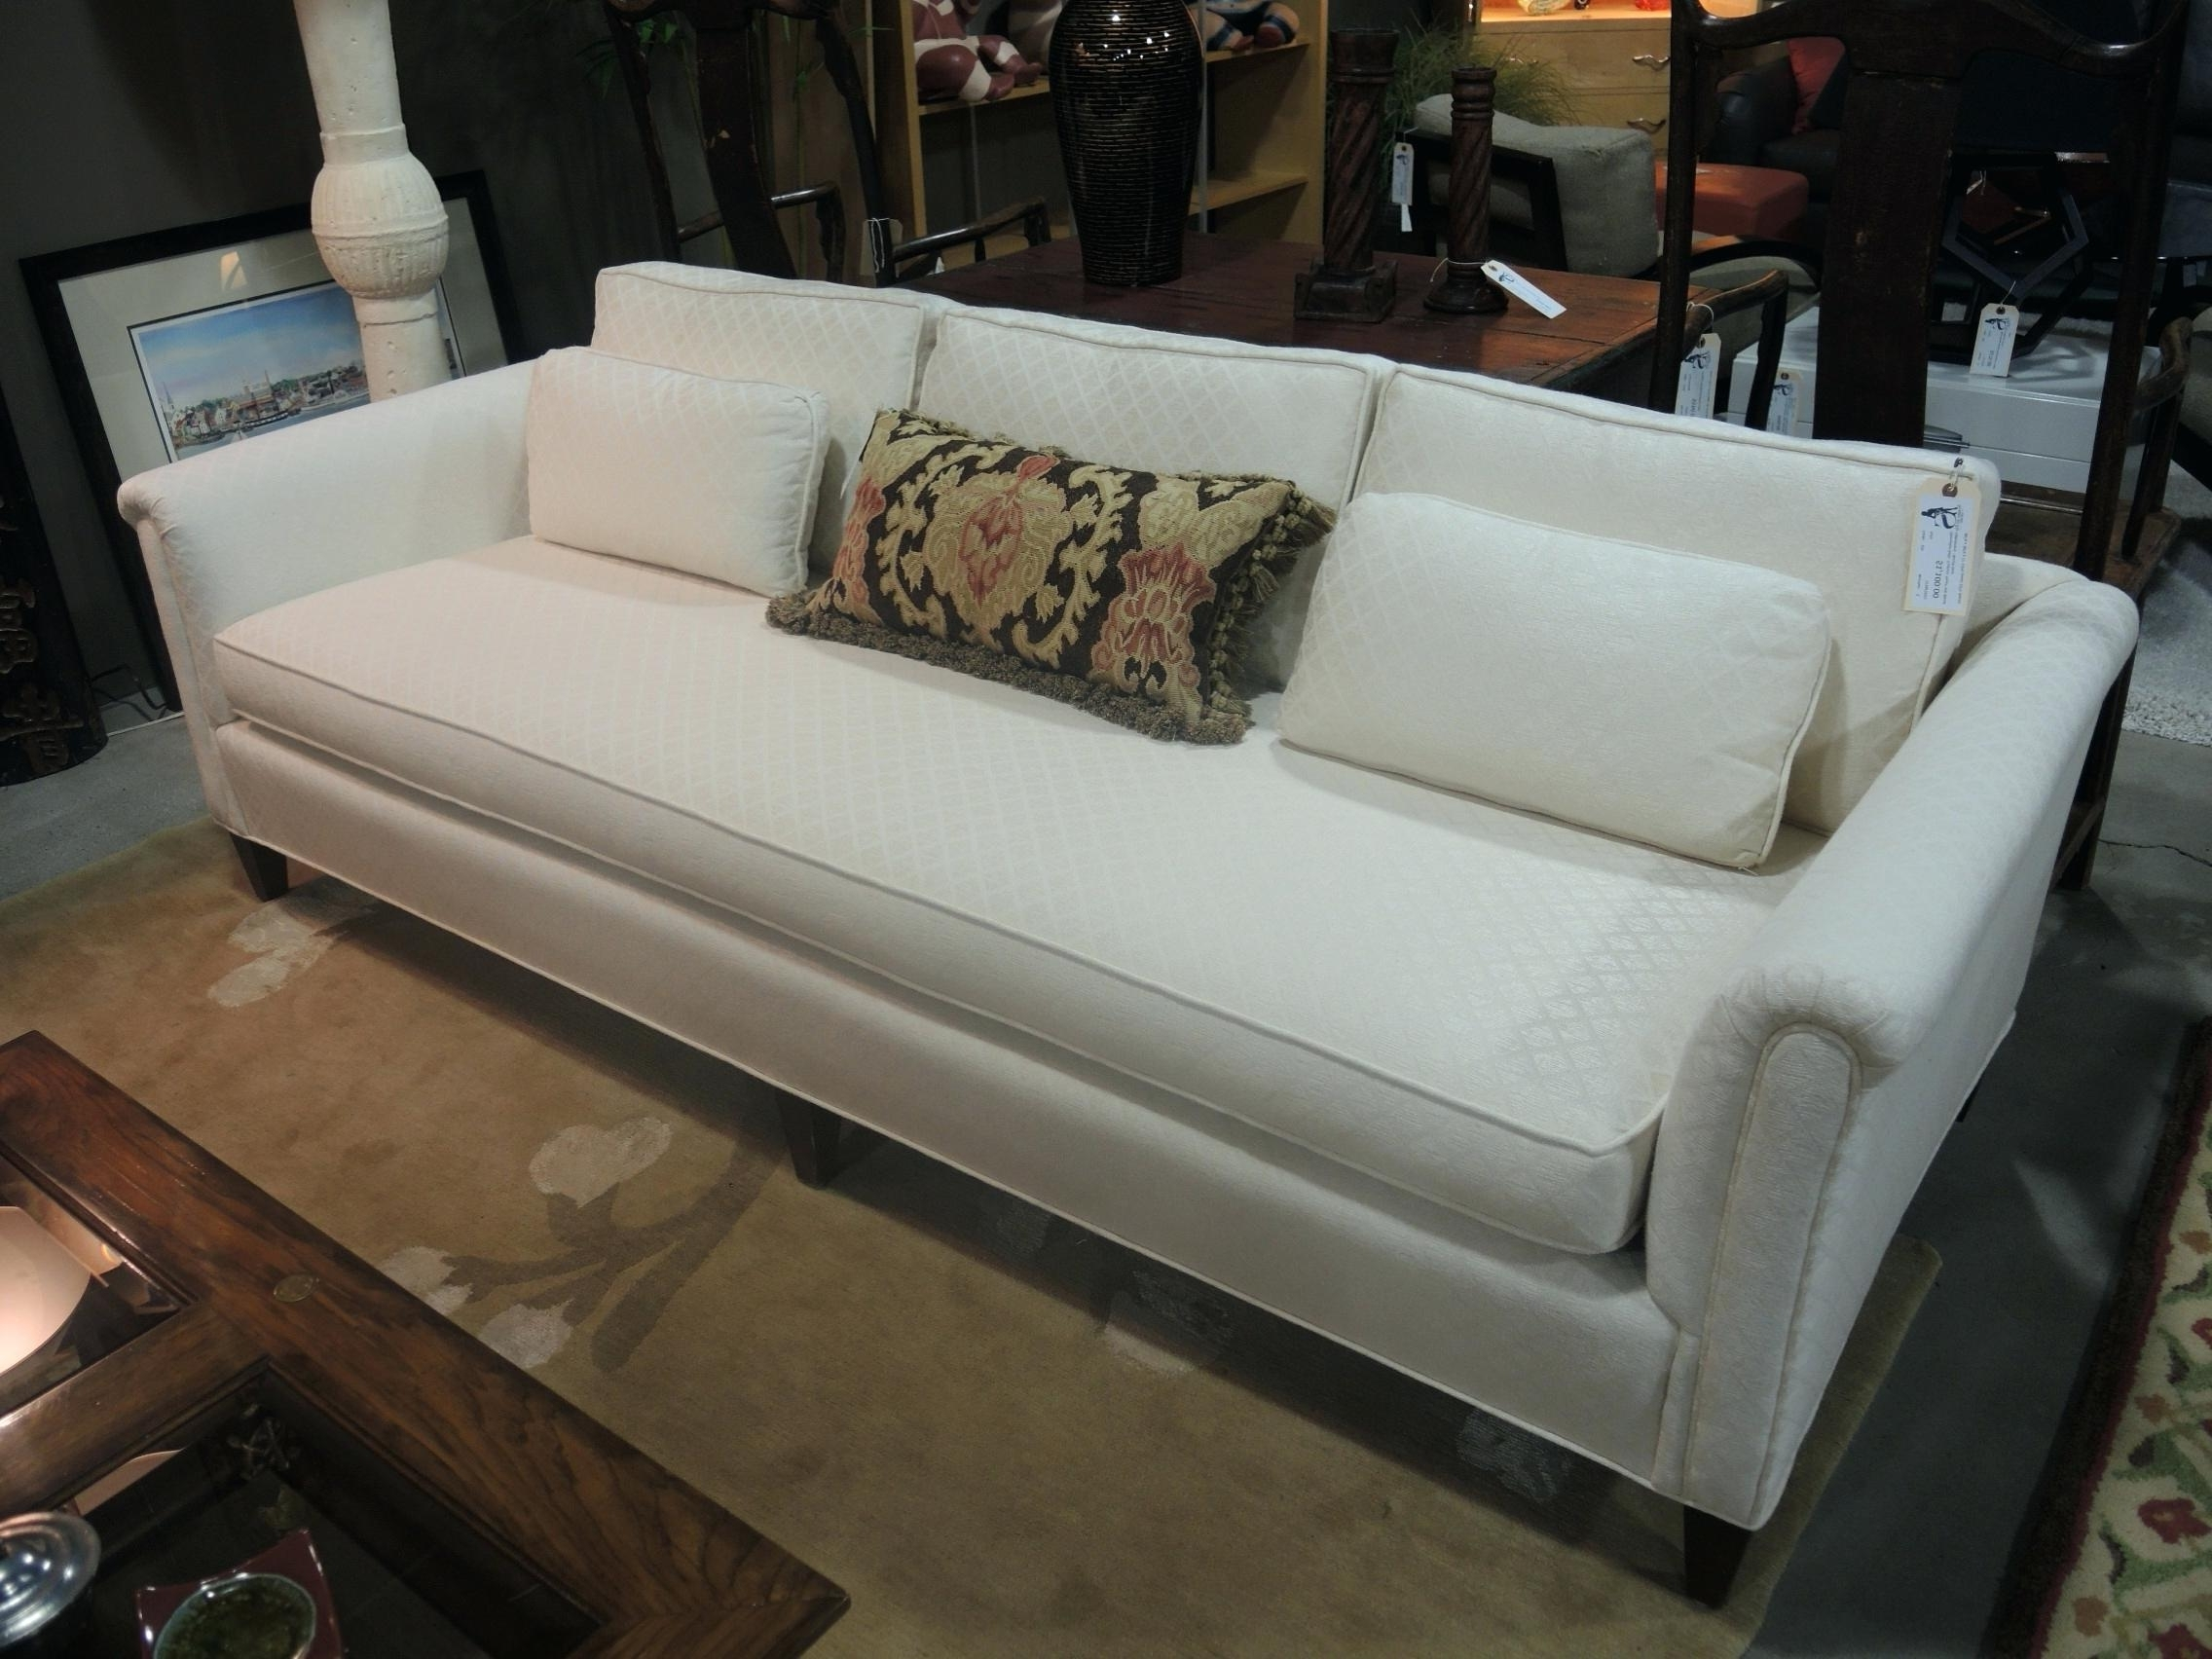 Current Deep Cushion Couch Cushioned Leather Sectional Couches With Deep Cushion Sofas (View 3 of 15)